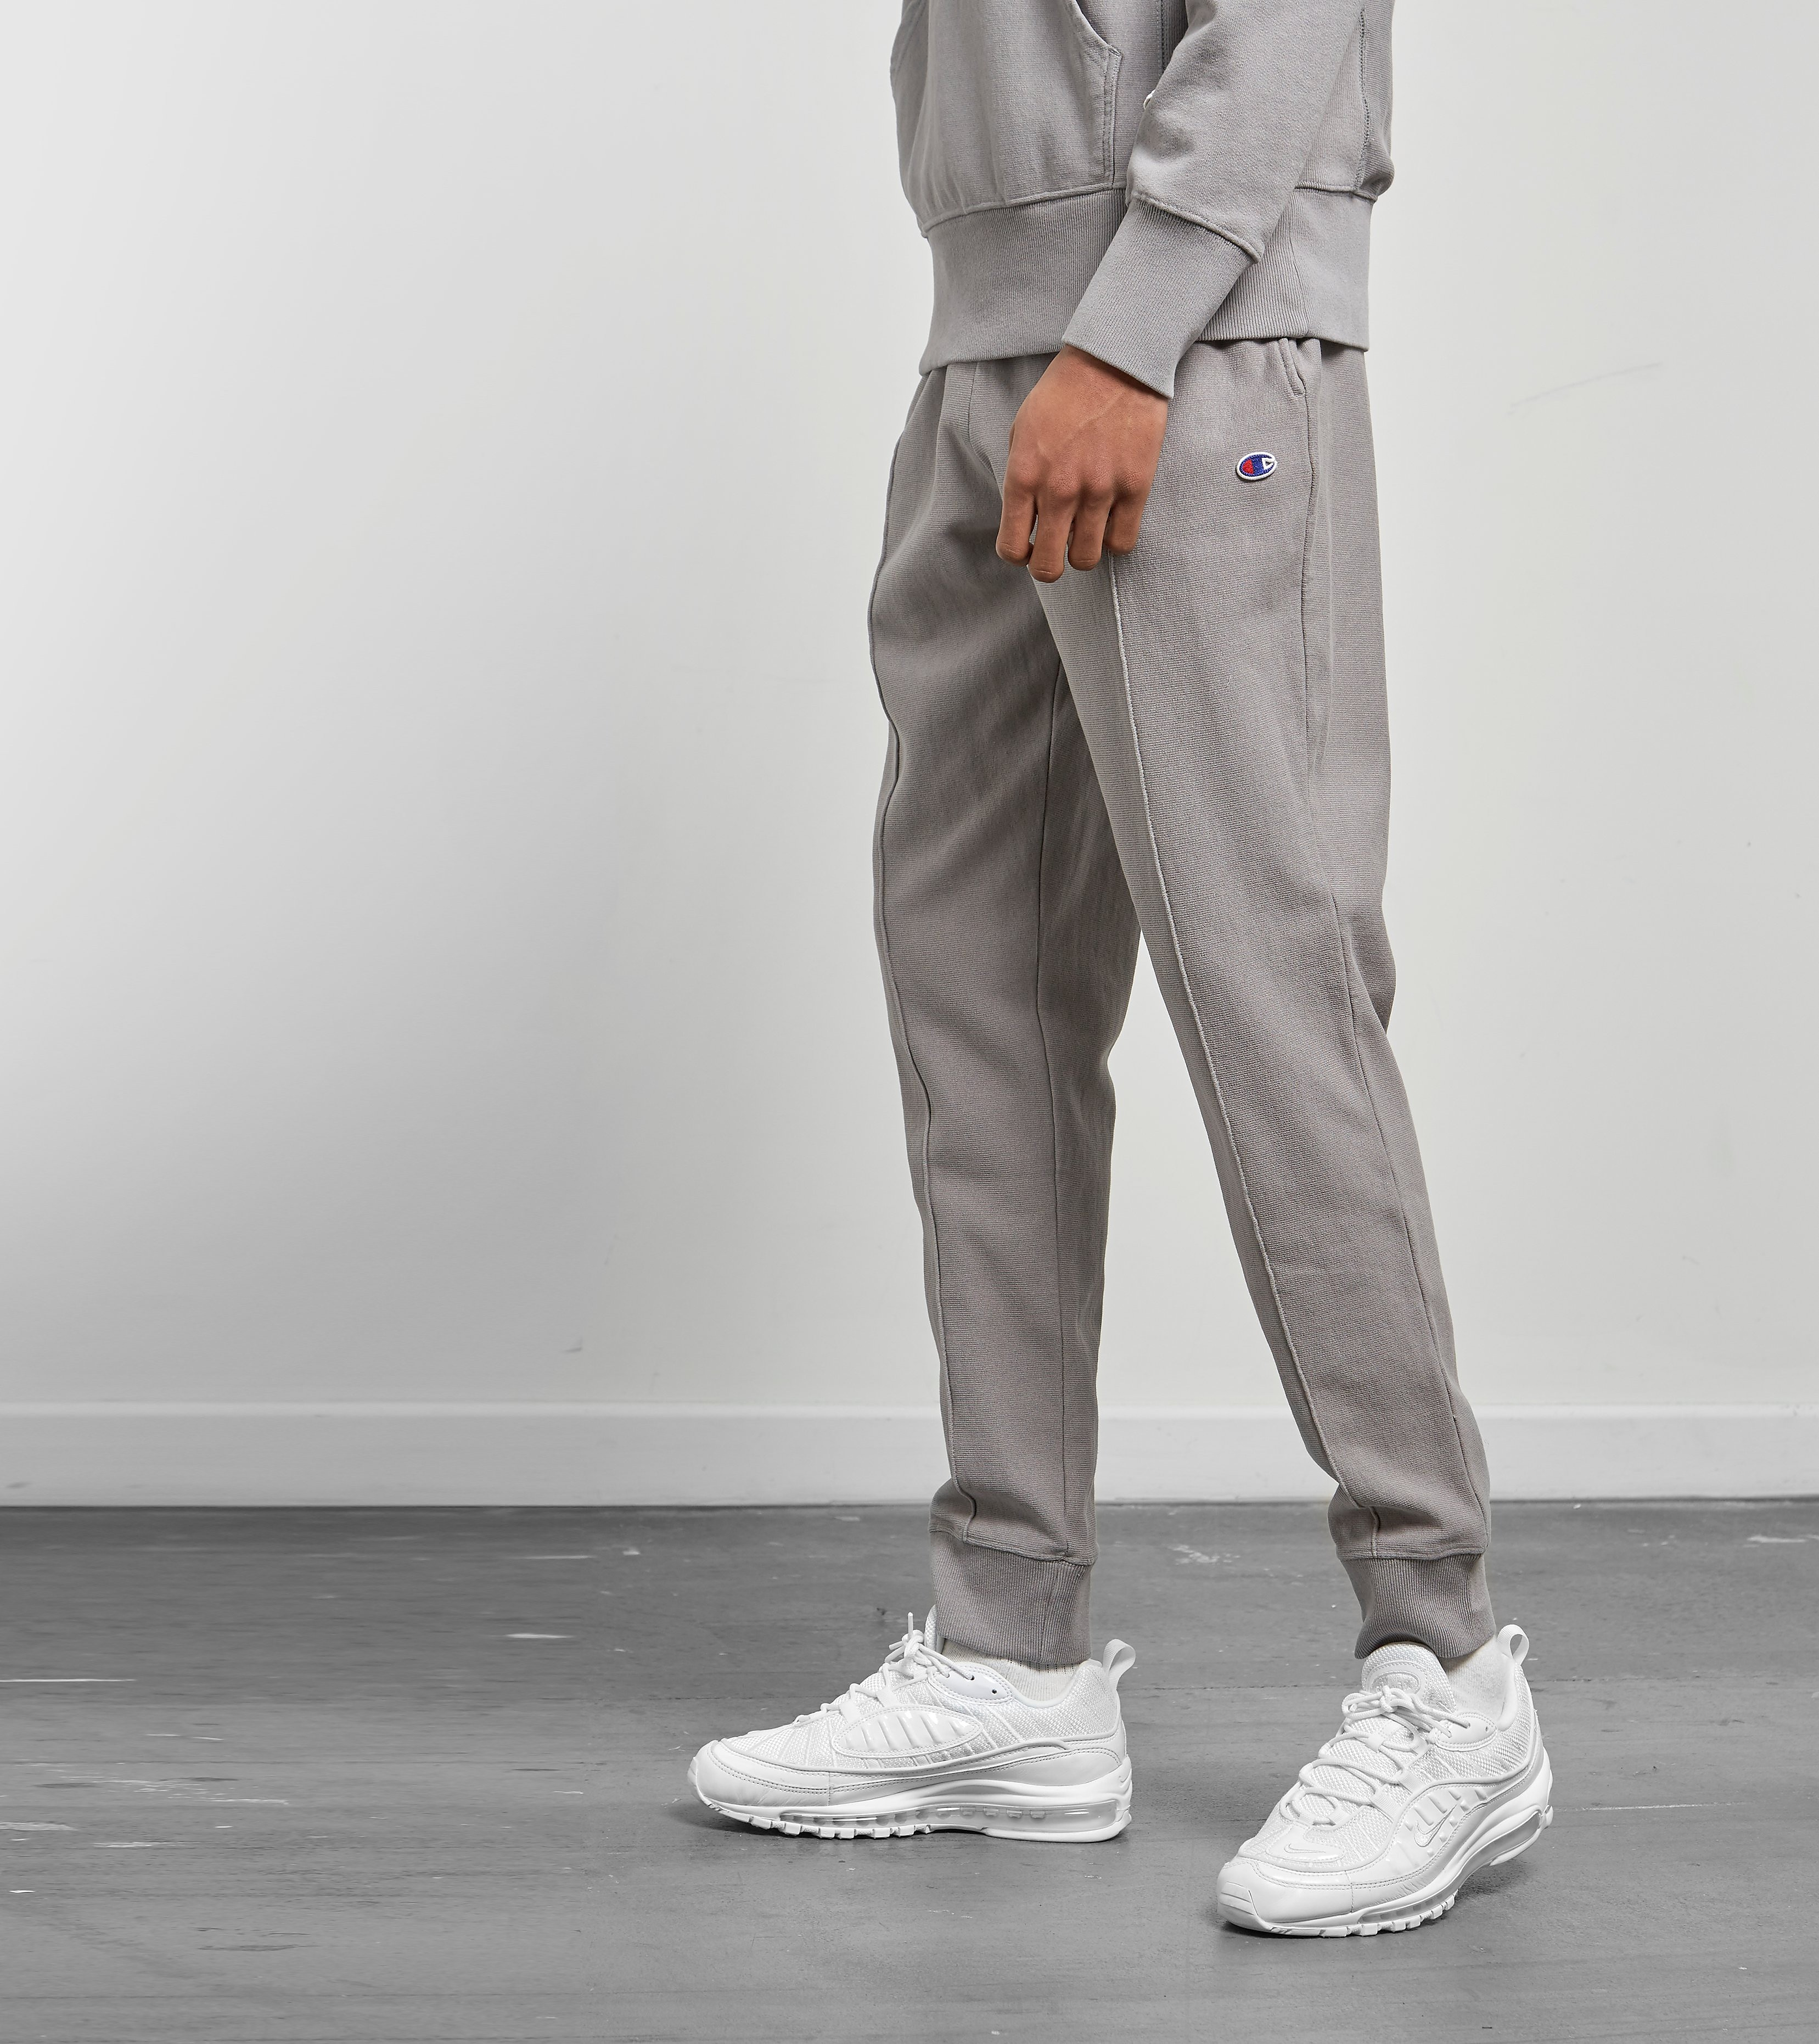 Champion Garment Dyed Sweat Pants - size? Exclusive